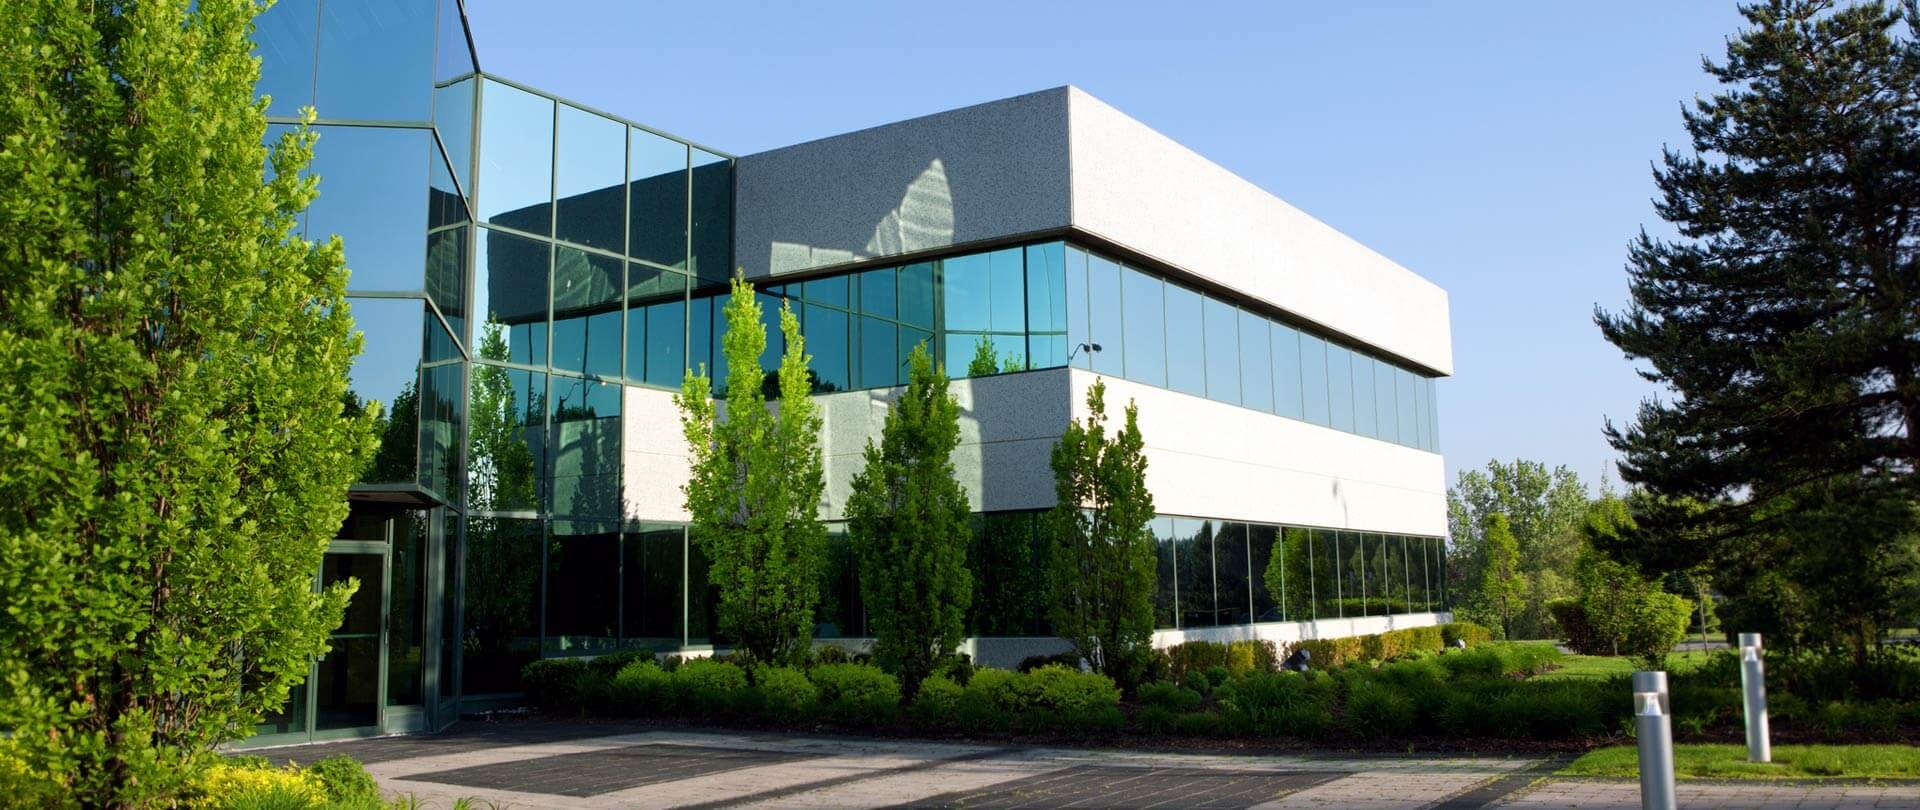 Science Park Building with trees